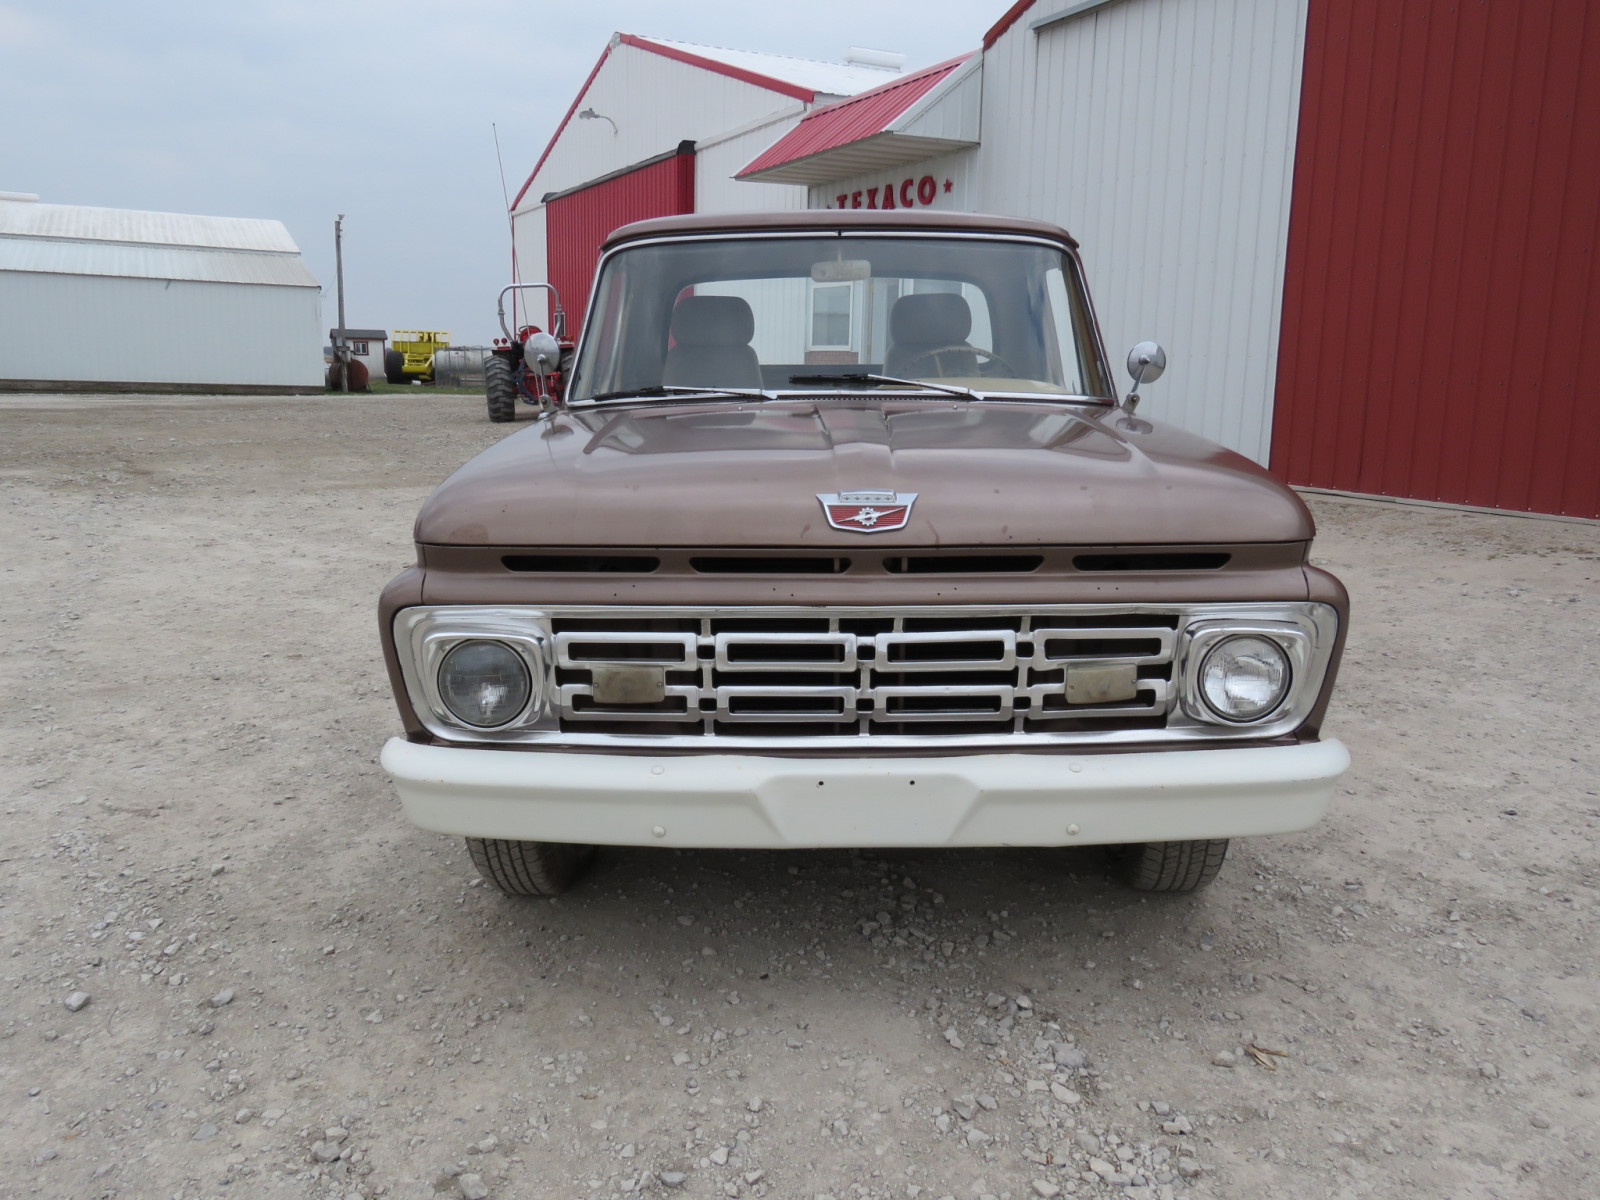 1964 Ford F100 Custom Cab Pickup - Image 2